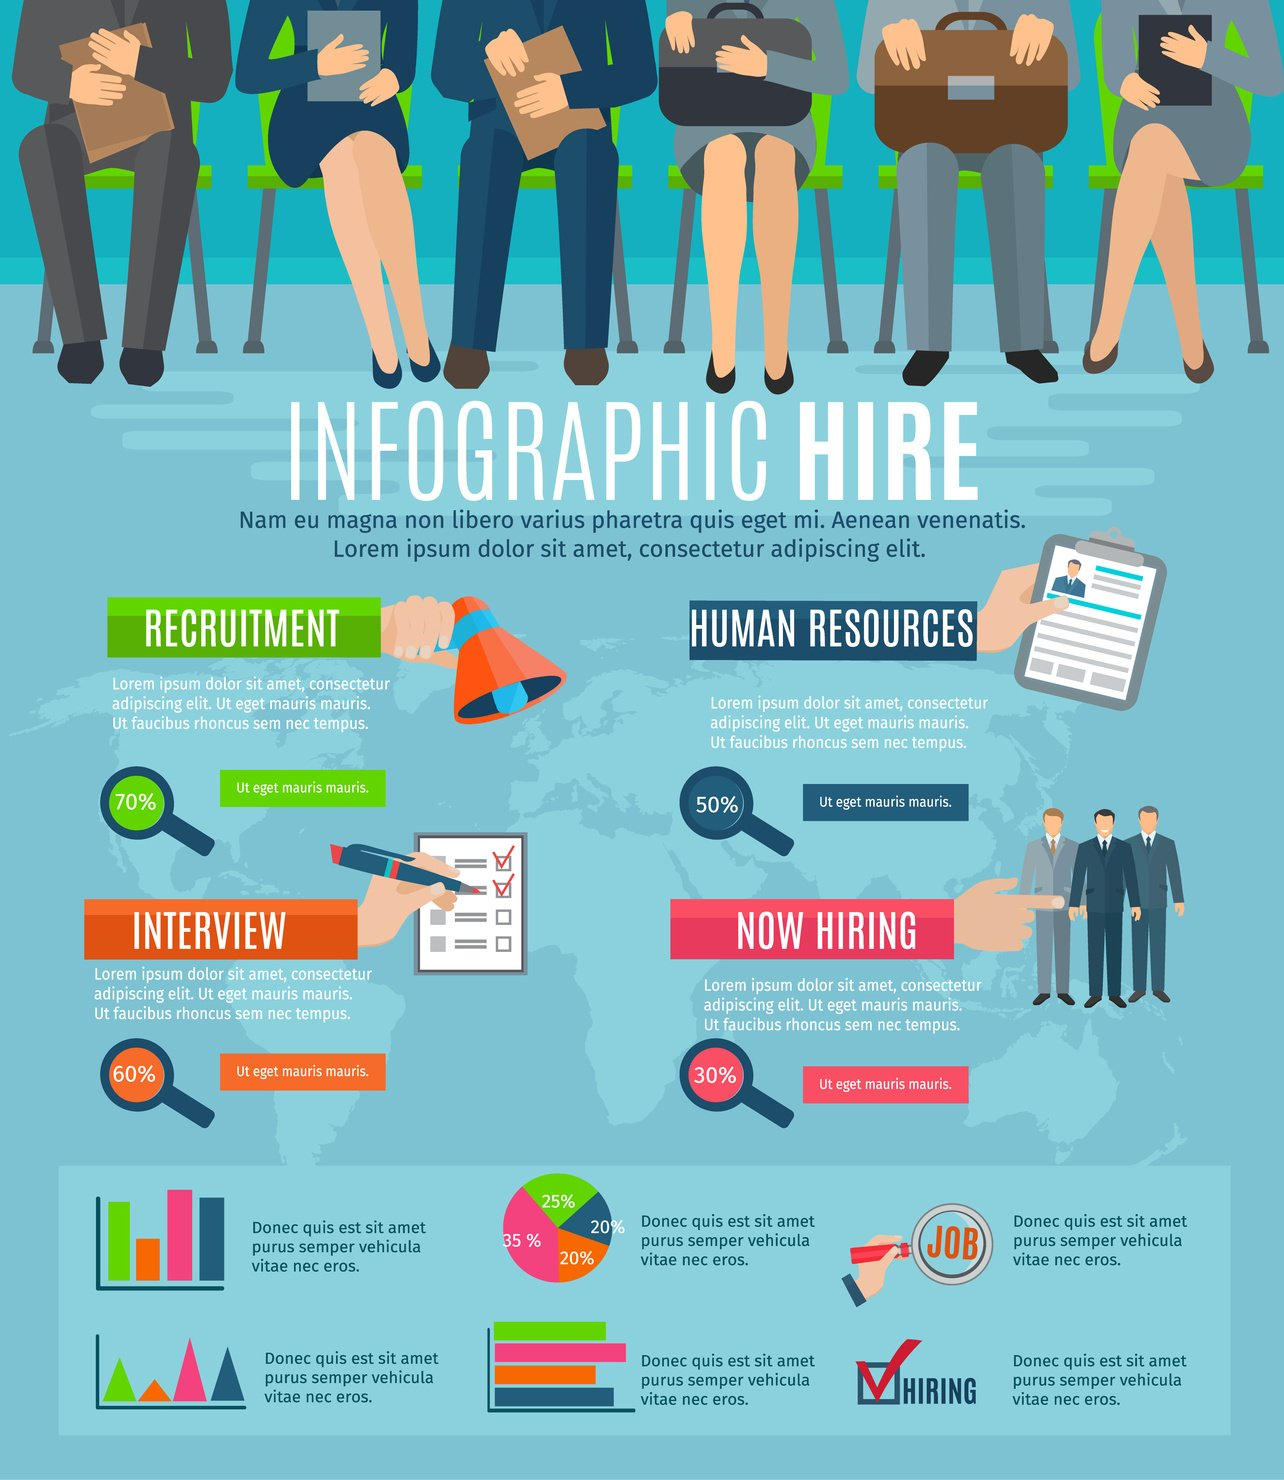 job search tips the top mistakes this infographic will give you some top job search tips